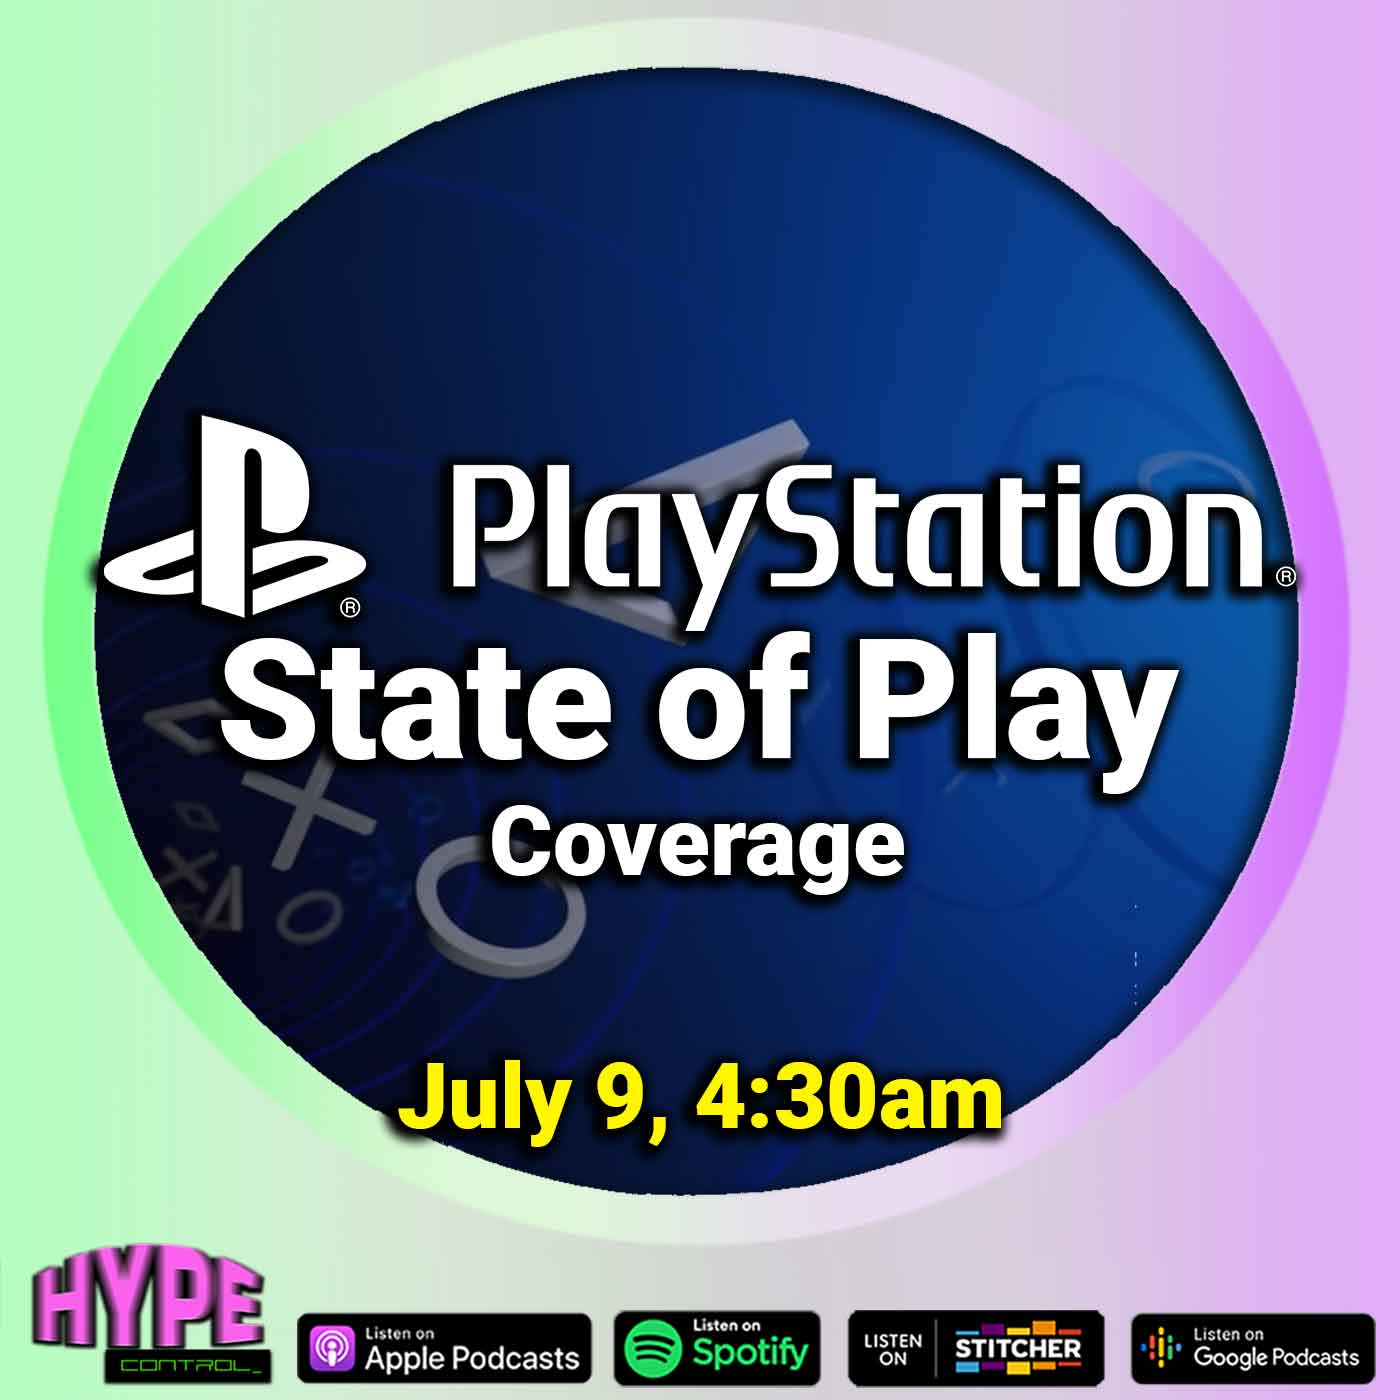 Ep. 26 - Playstation State of Play July 2021 Coverage